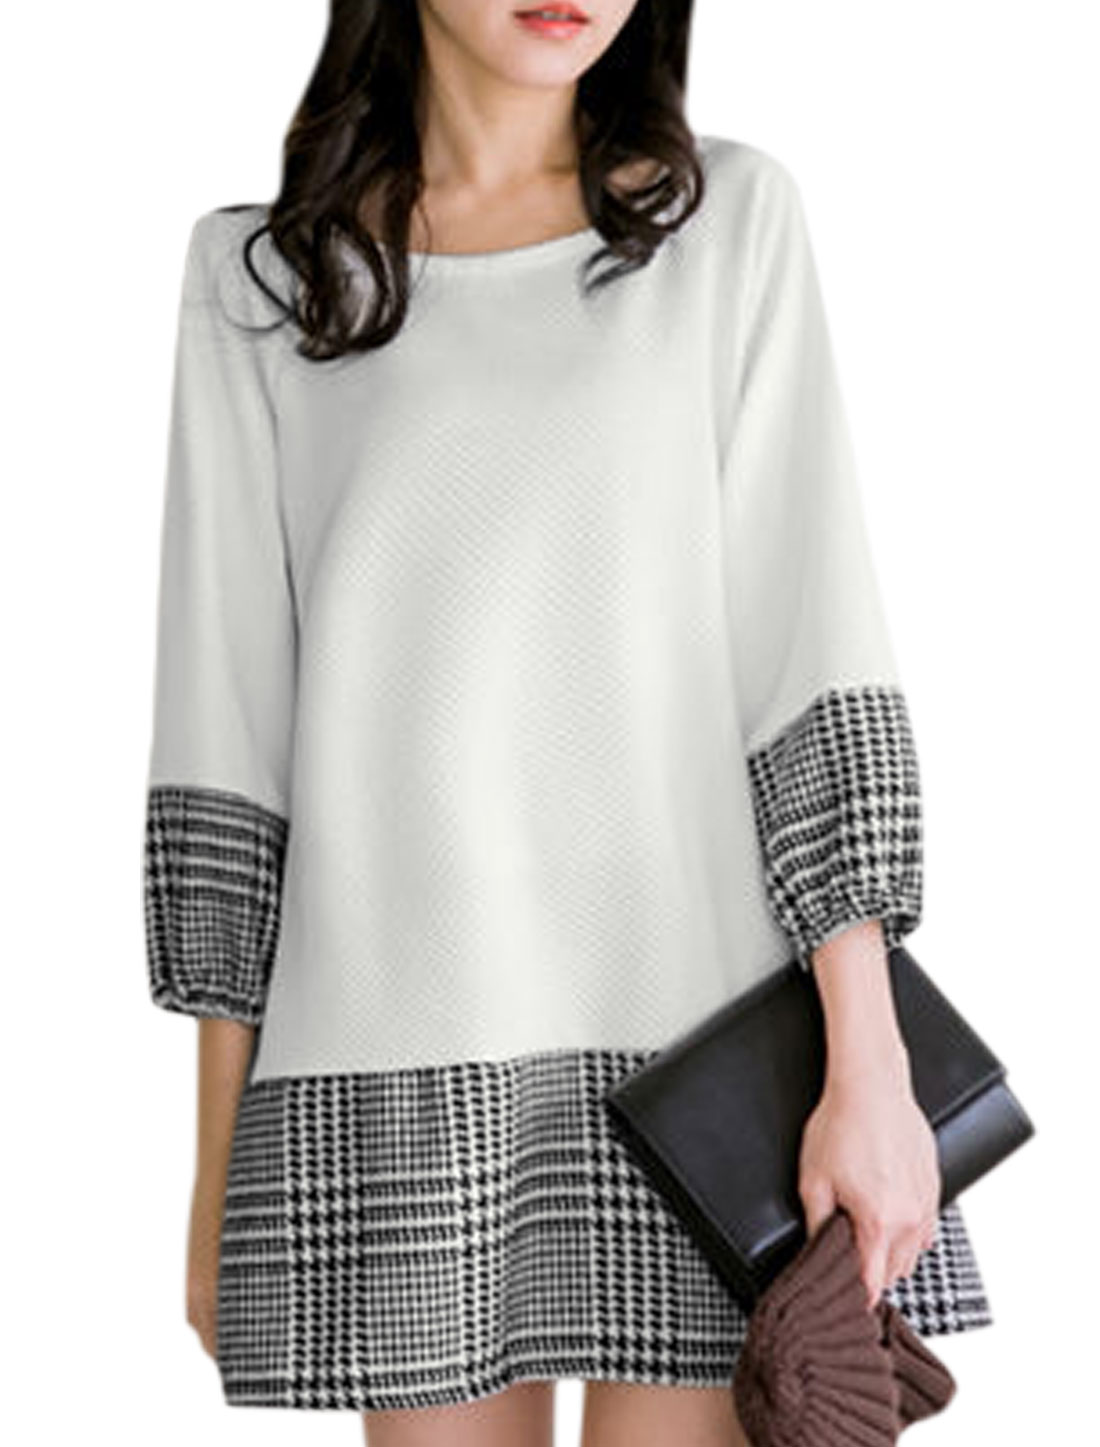 Round Neck Houndstooth Pattern Leisure Dress for Women White S